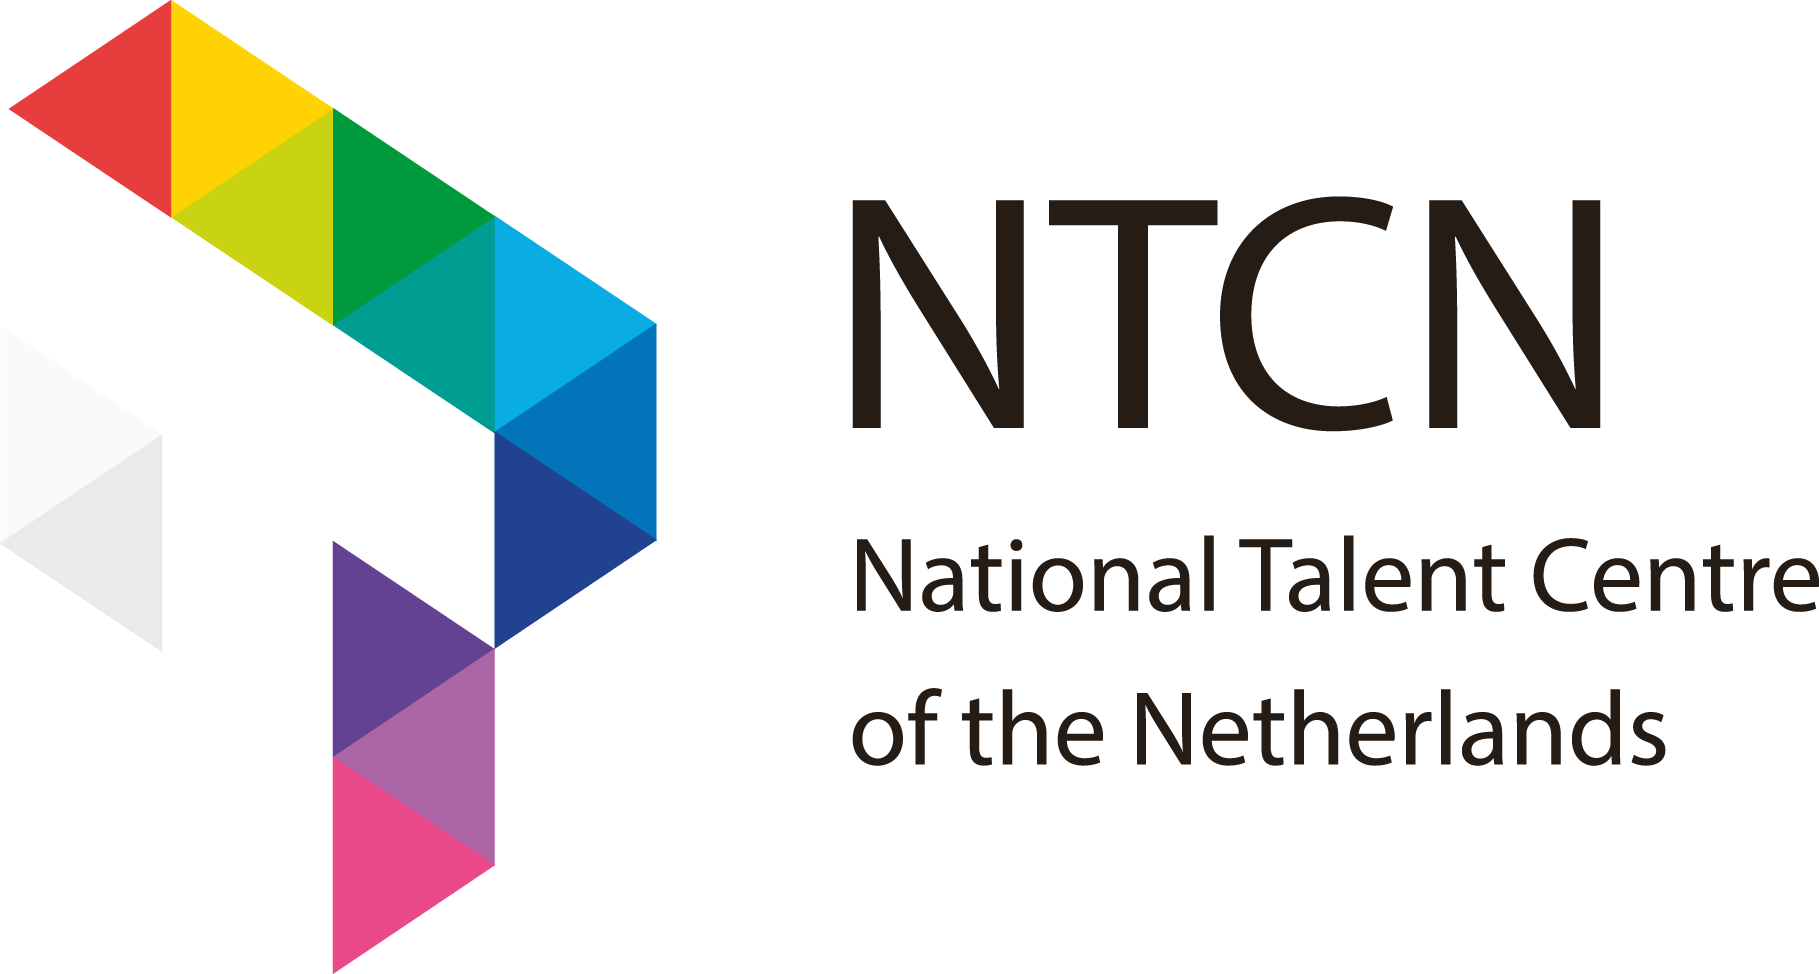 National Talent Centre of the Netherlands